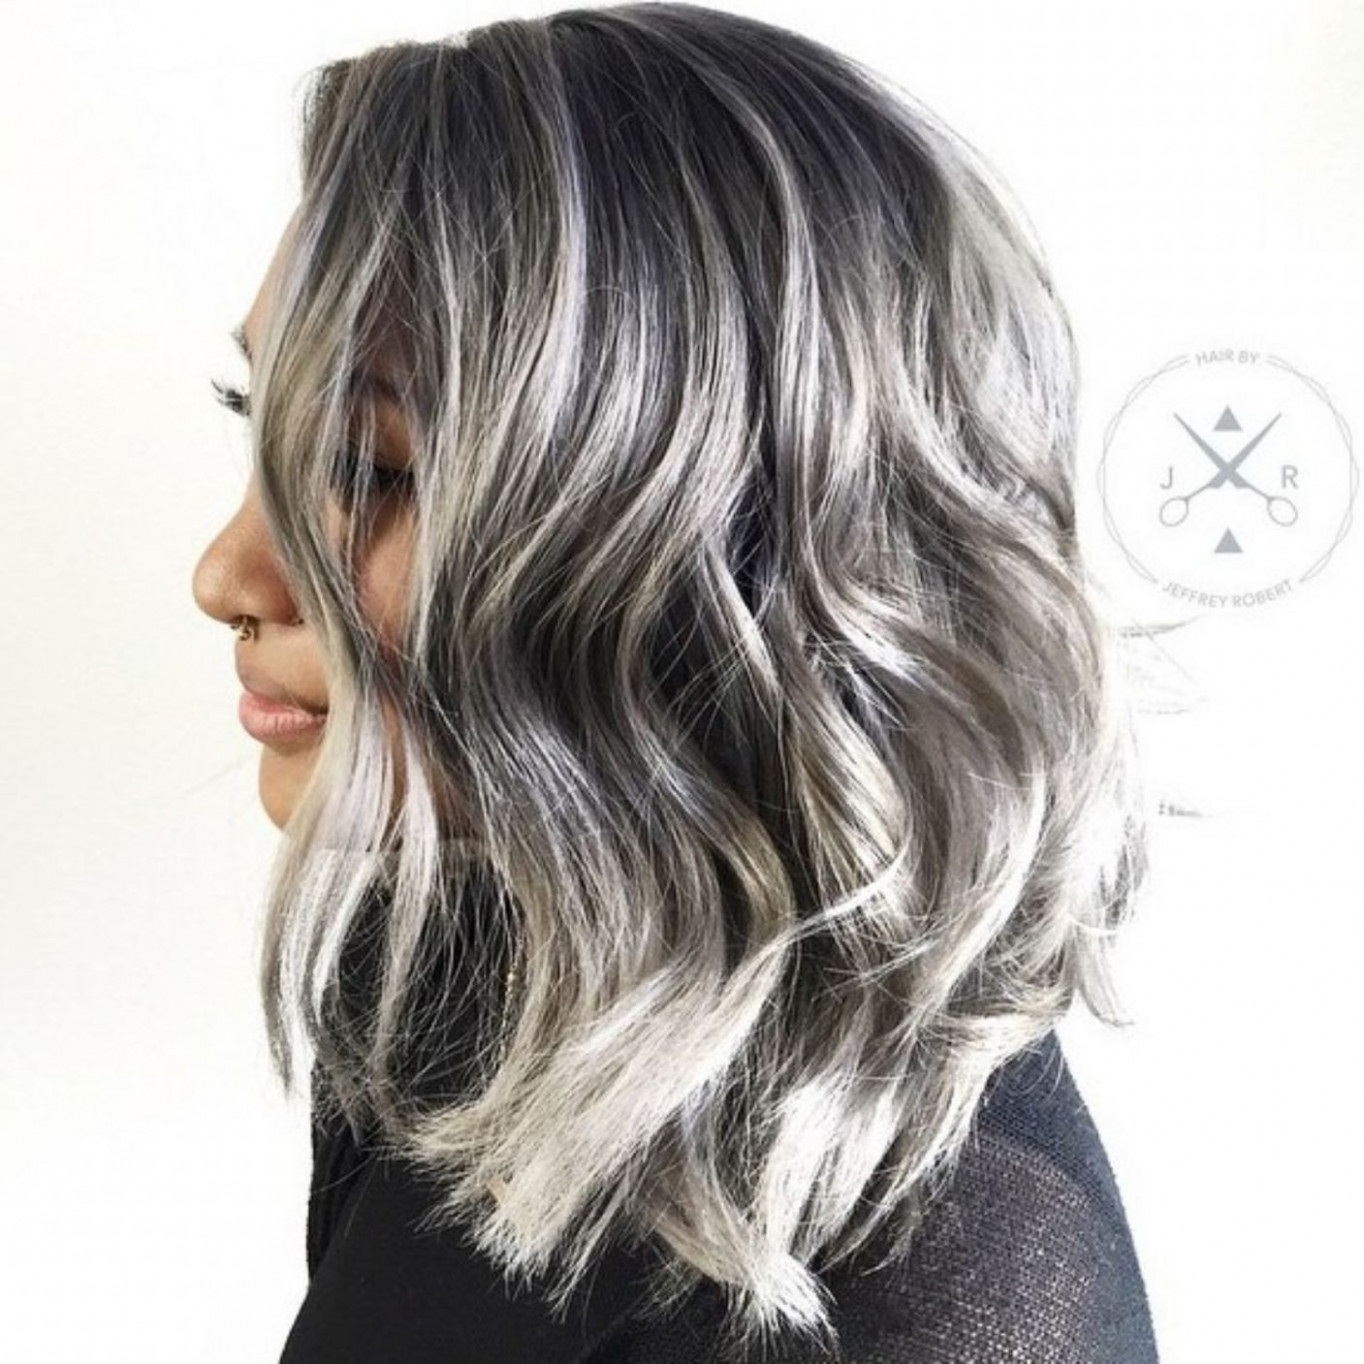 11 shades of grey: silver and white highlights for eternal youth